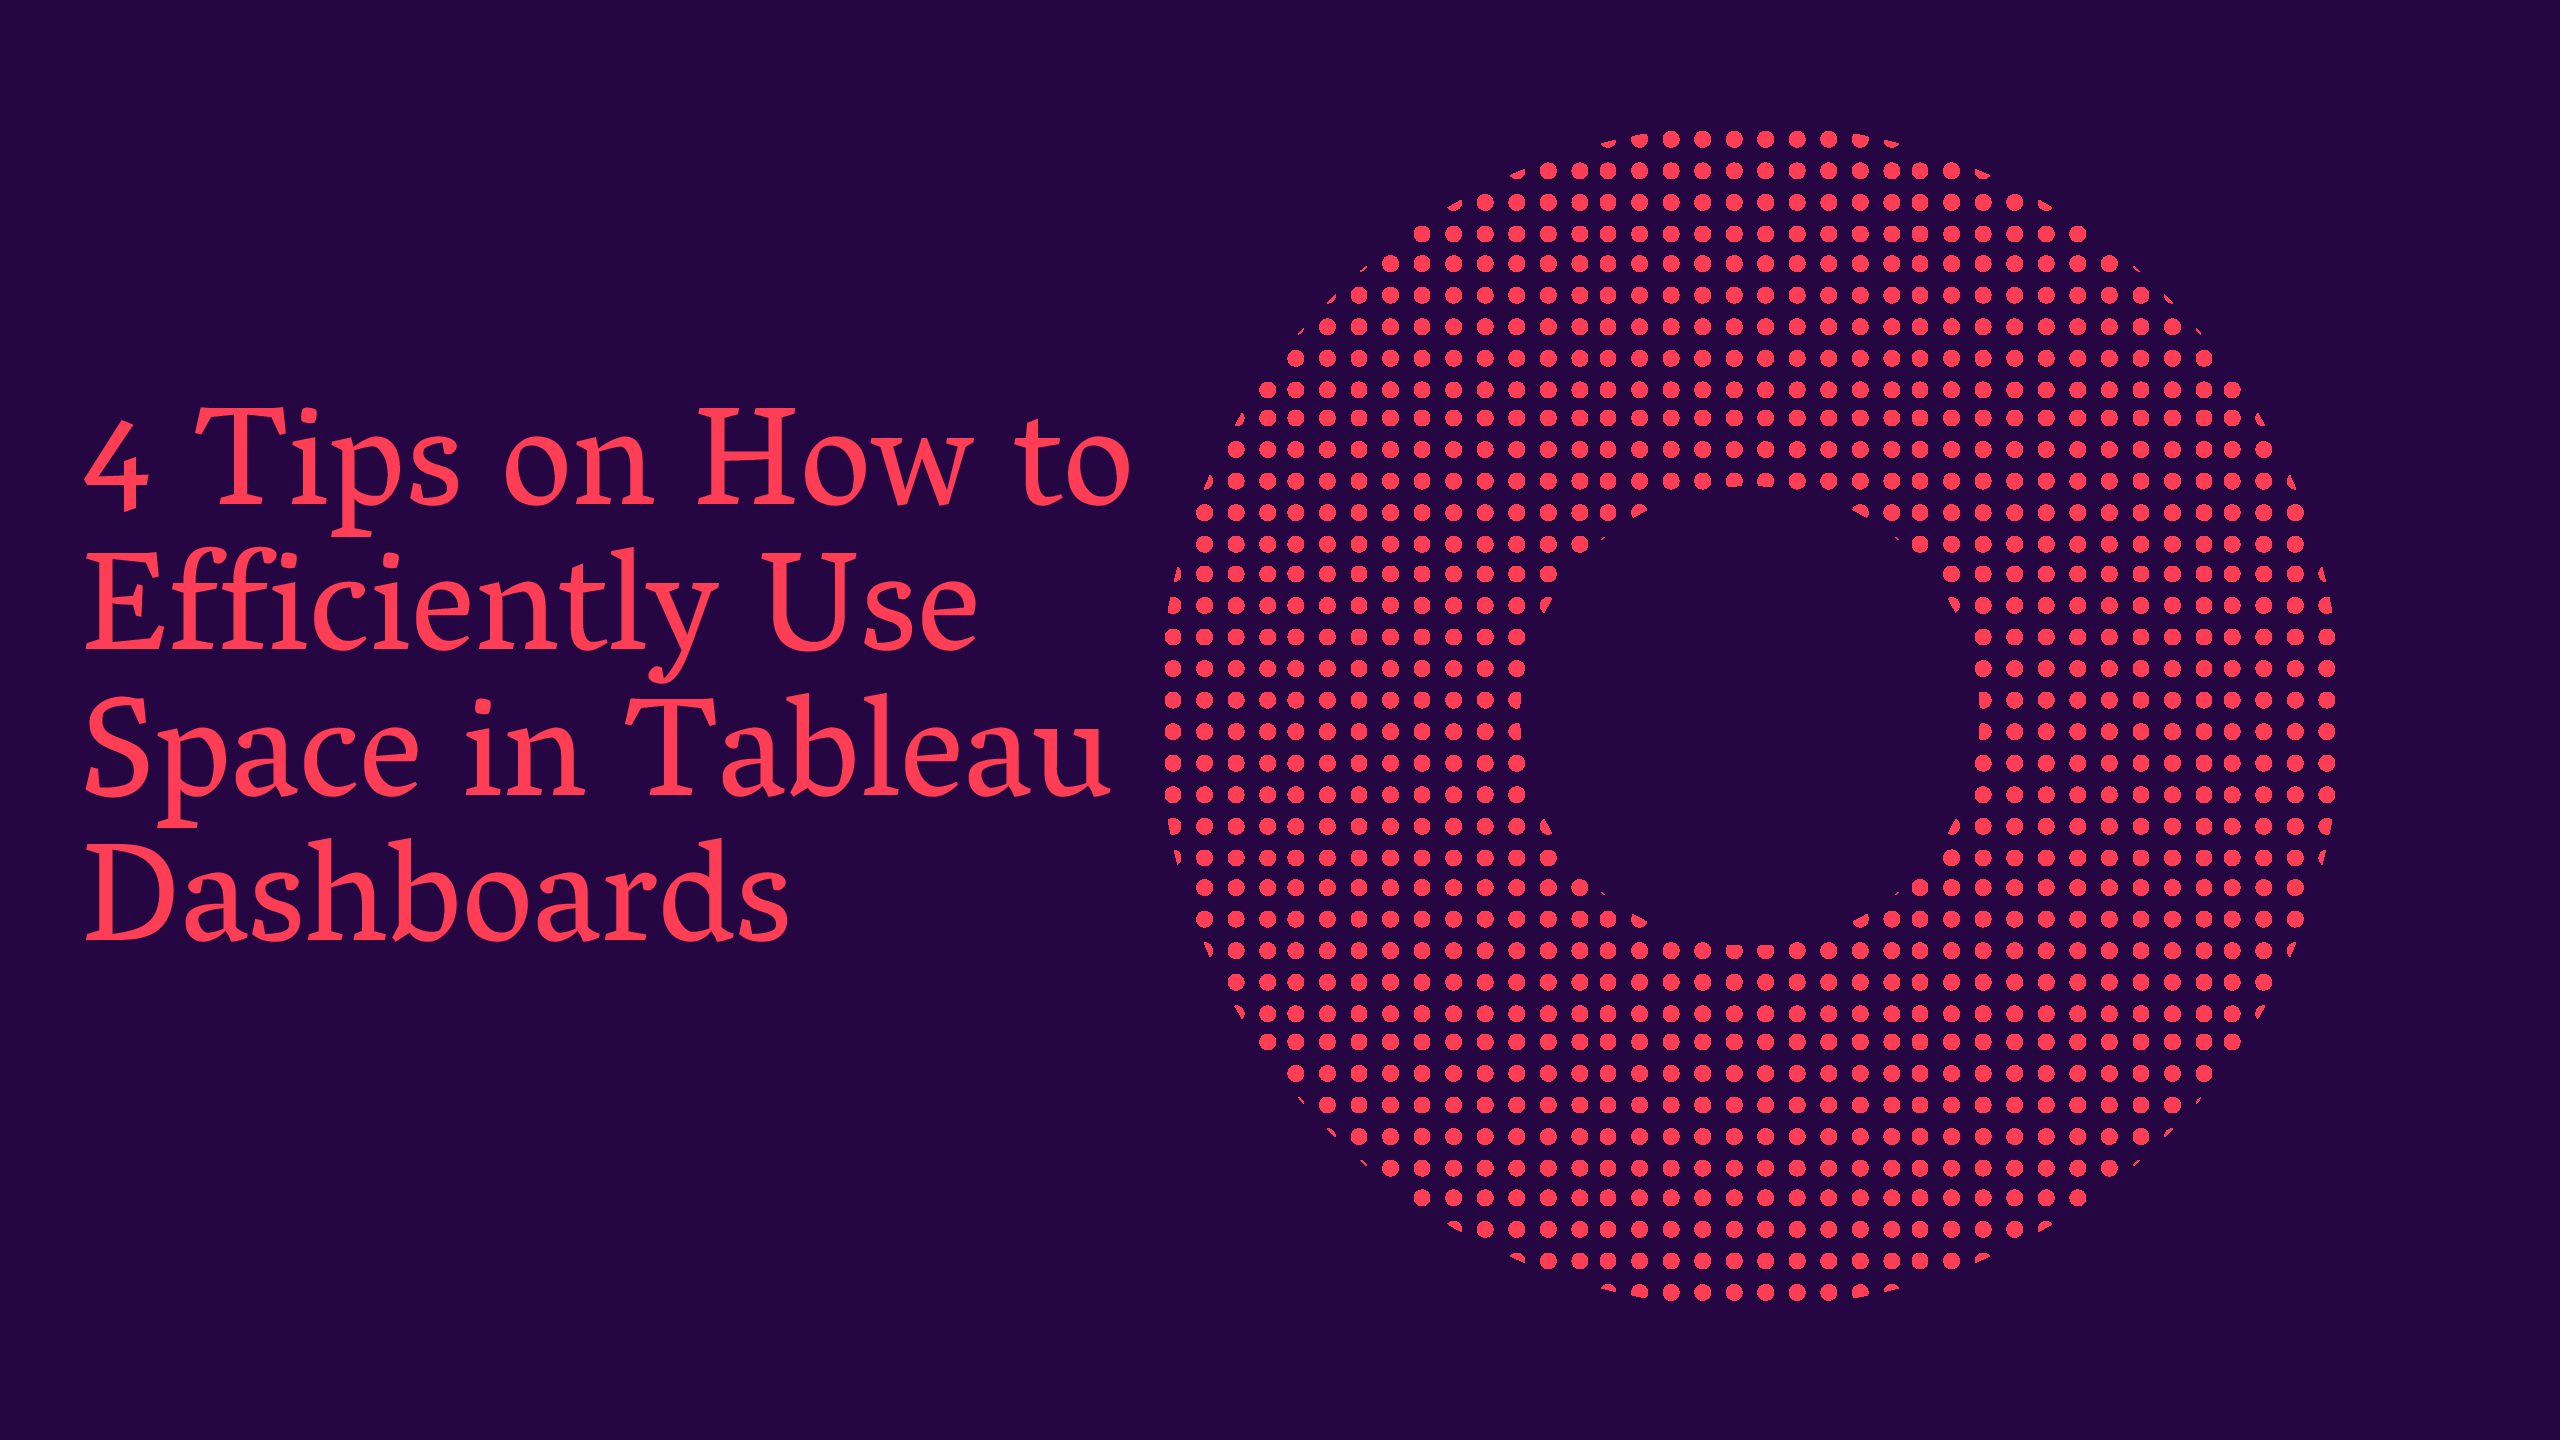 4 Tips on How to Efficiently Use Space in Tableau Dashboards